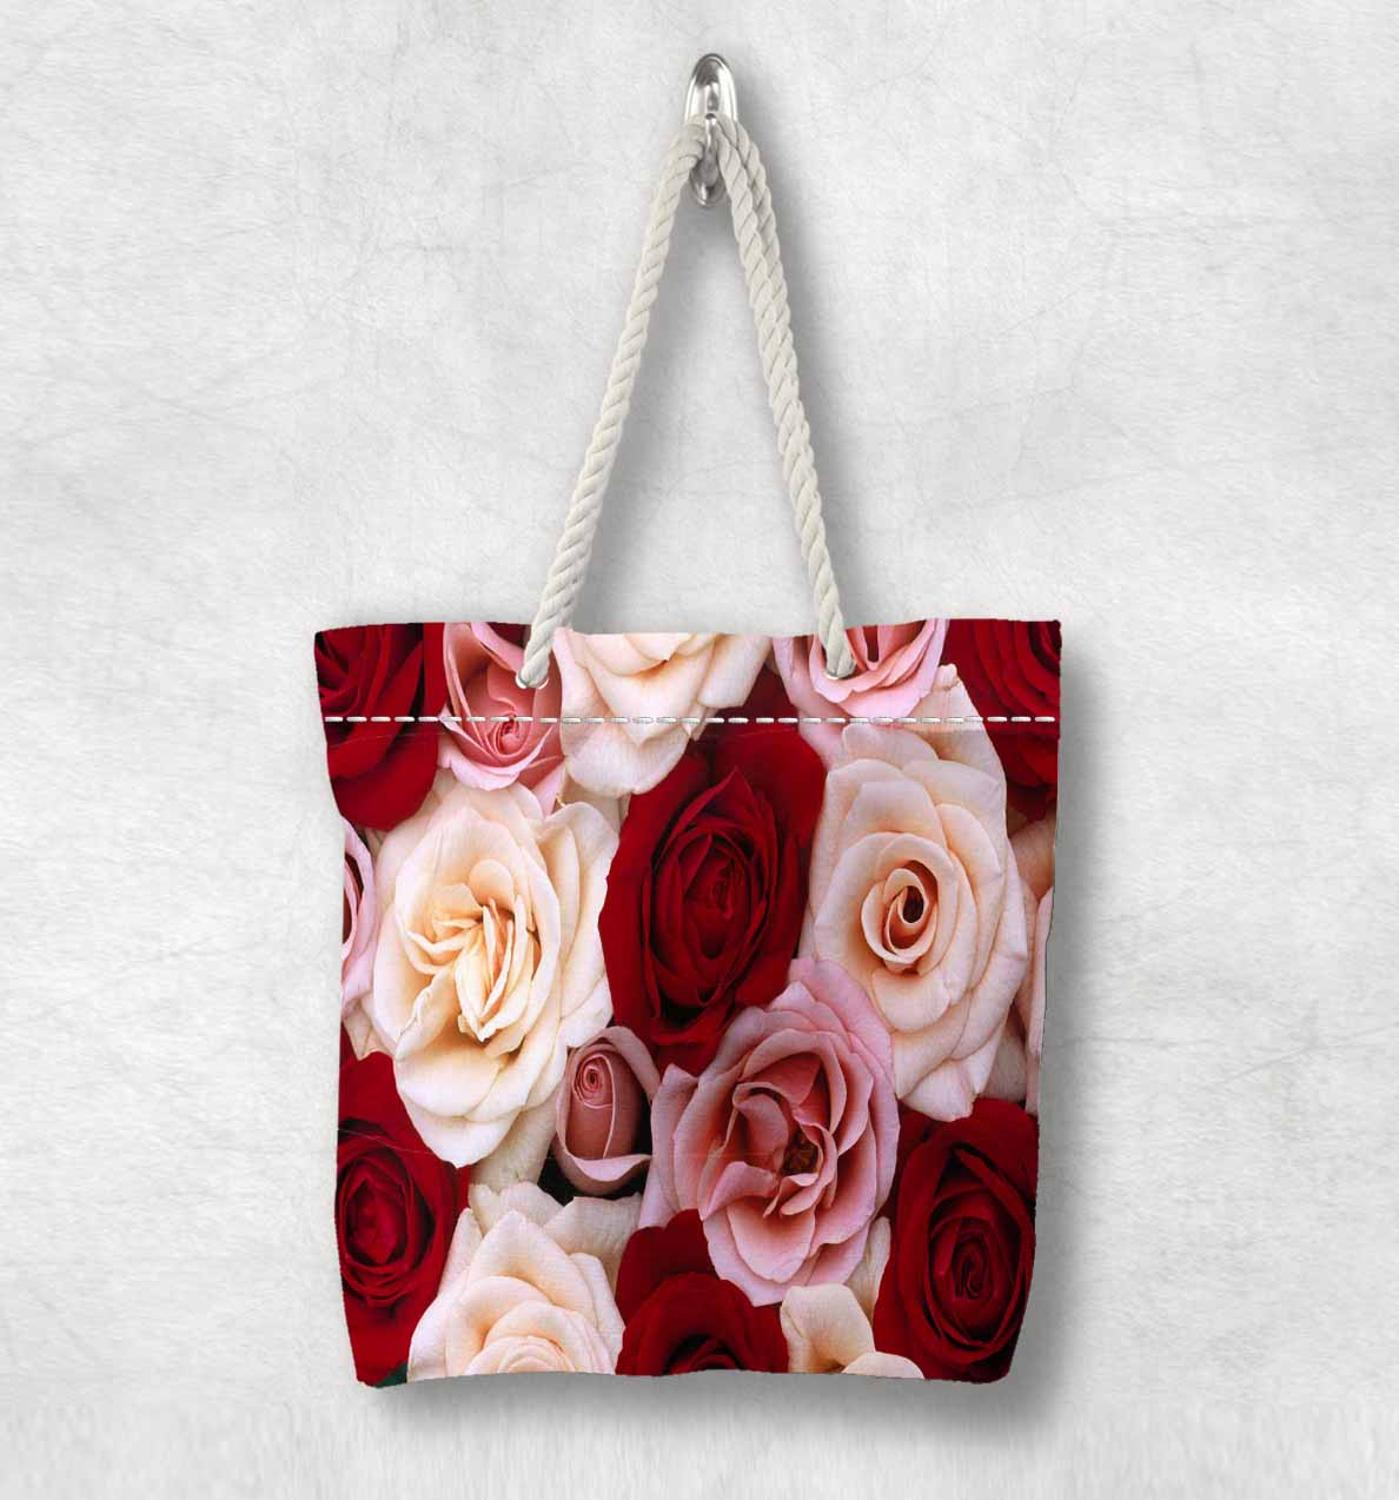 Else Pink Red White Roses Flowers Floral New Fashion White Rope Handle Canvas Bag Cotton Canvas Zippered Tote Bag Shoulder Bag